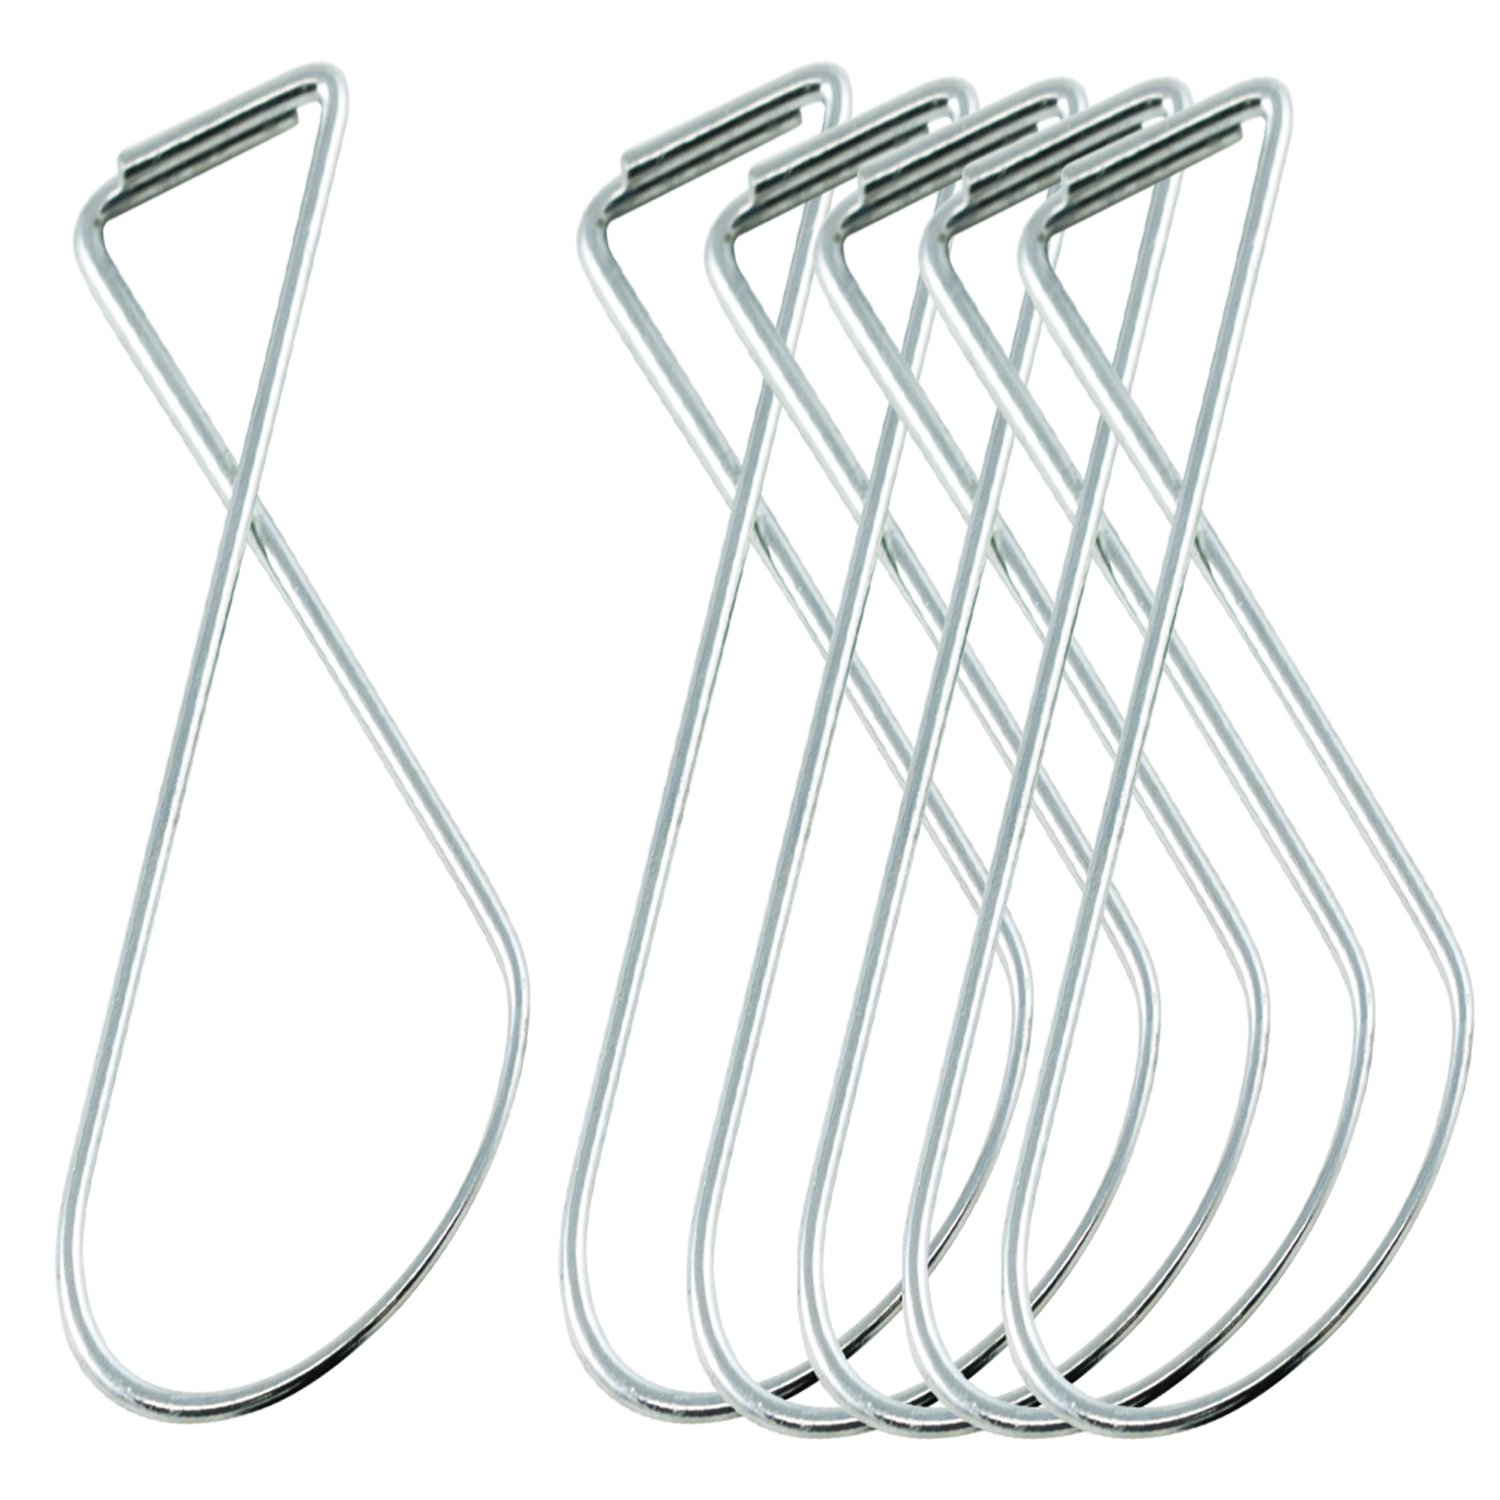 Houseables Ceiling Hook Clips, 100 Pack, 2.5'', 10 lb Support, Wire, Grid Hanger, Figure 8, Hanging T-Bar Squeeze Clips, For Classroom/Teacher/Office Organization/Signs/Decorations/Supplies/Graphics